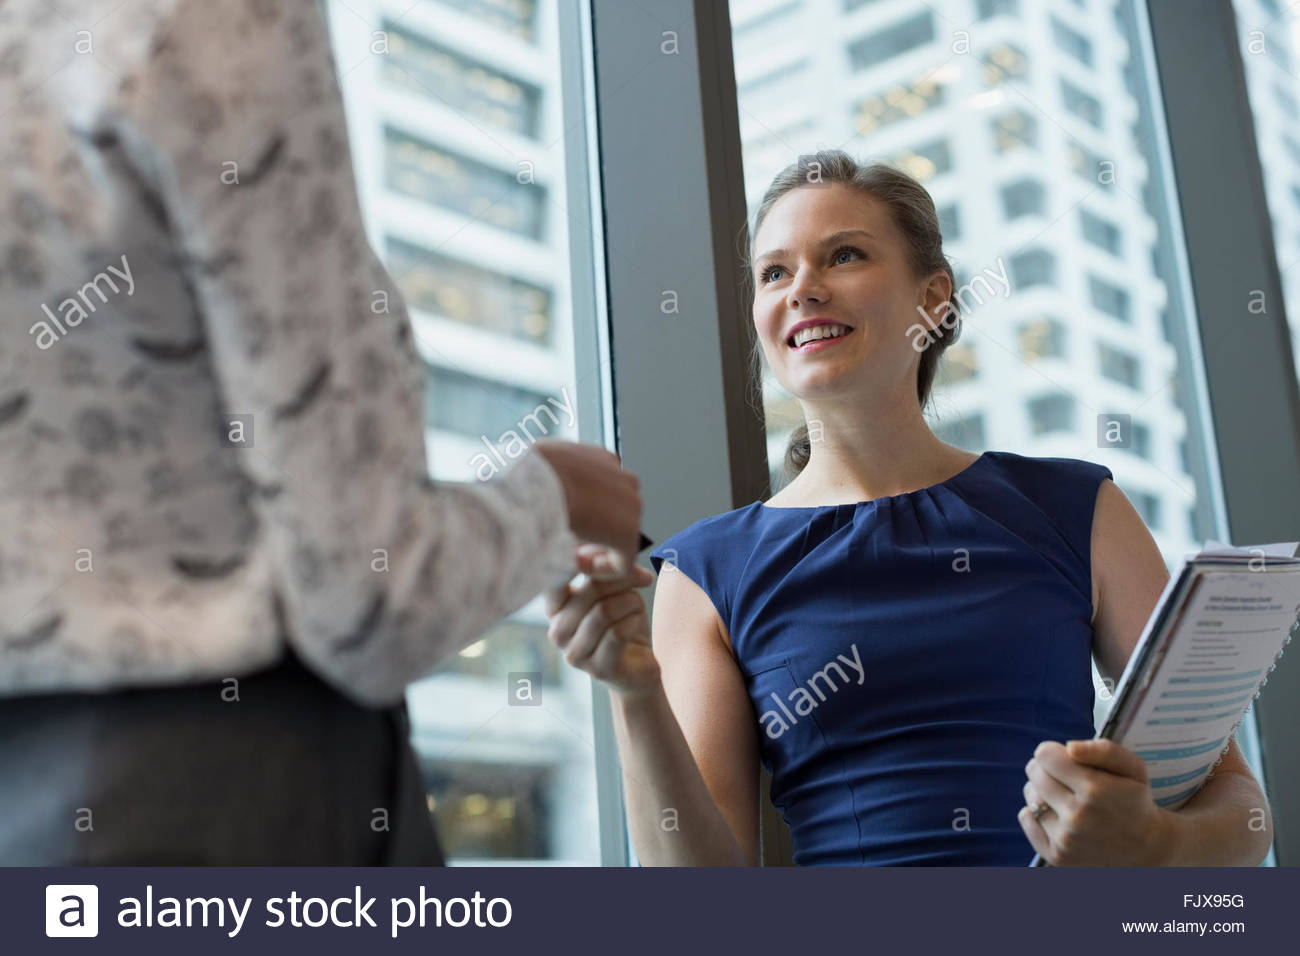 Smiling young businesswoman giving business card to colleague - Stock Image